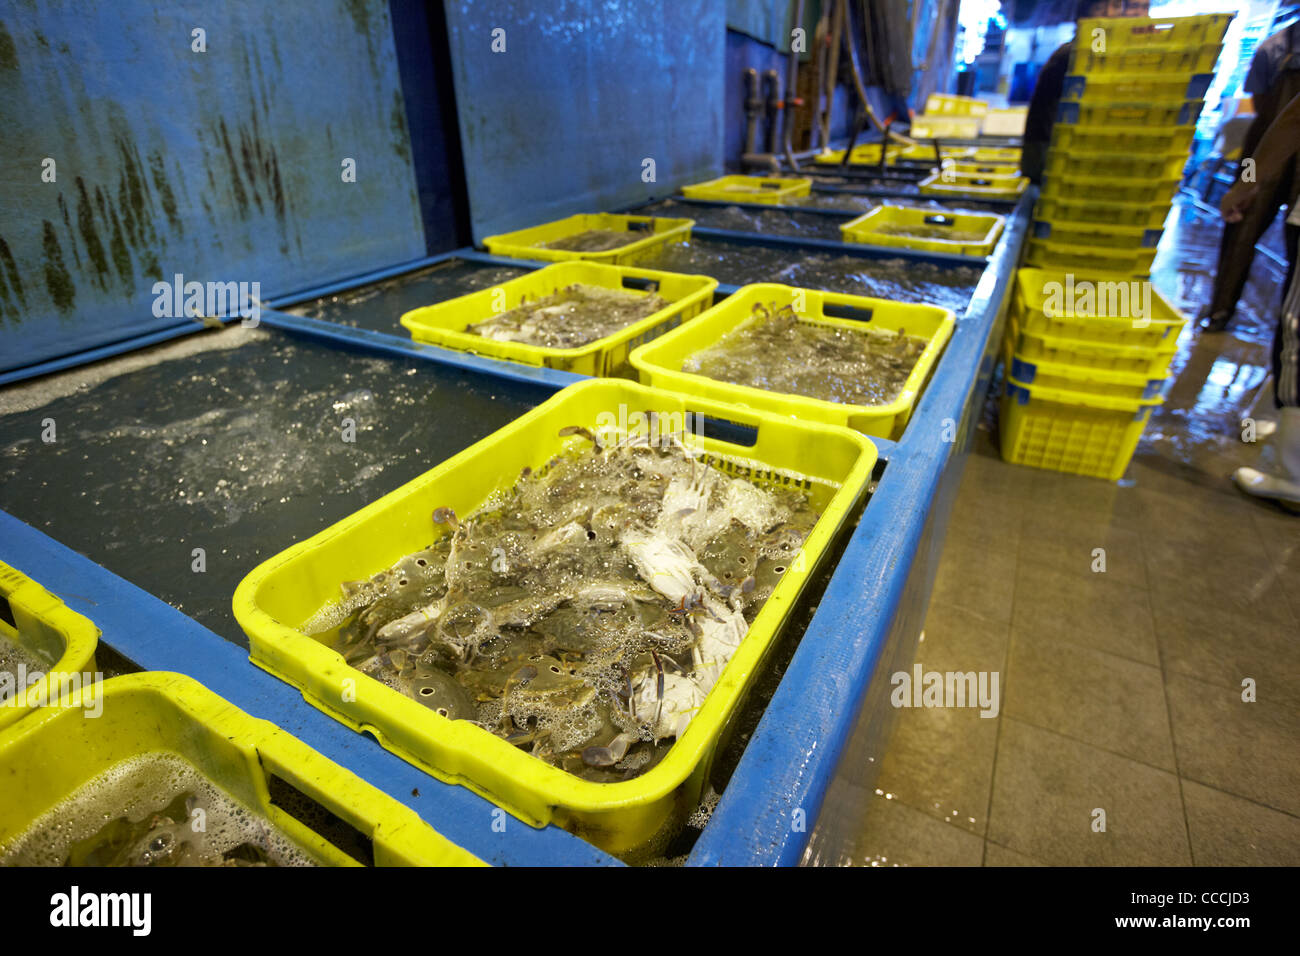 tanks of fresh crabs for sale at aberdeen wholesale fish and seafood market hong kong hksar china asia - Stock Image